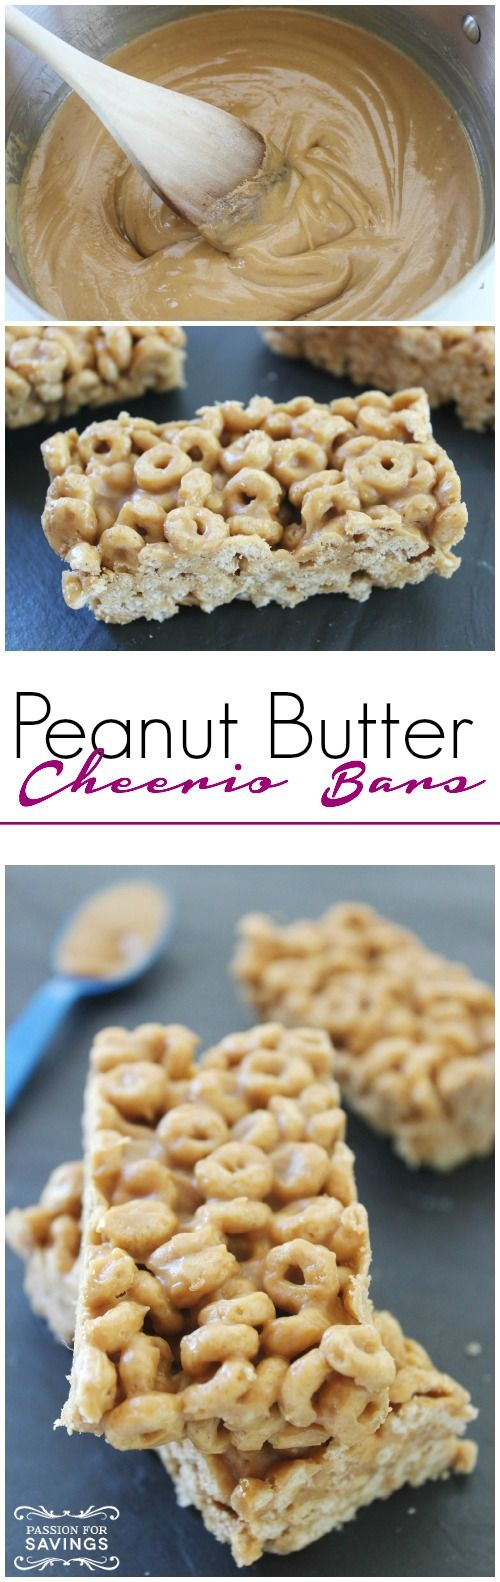 Peanut Butter Cheerio Bars! Homemade Breakfast Recipe or Snack Recipe for an easy Treat!: